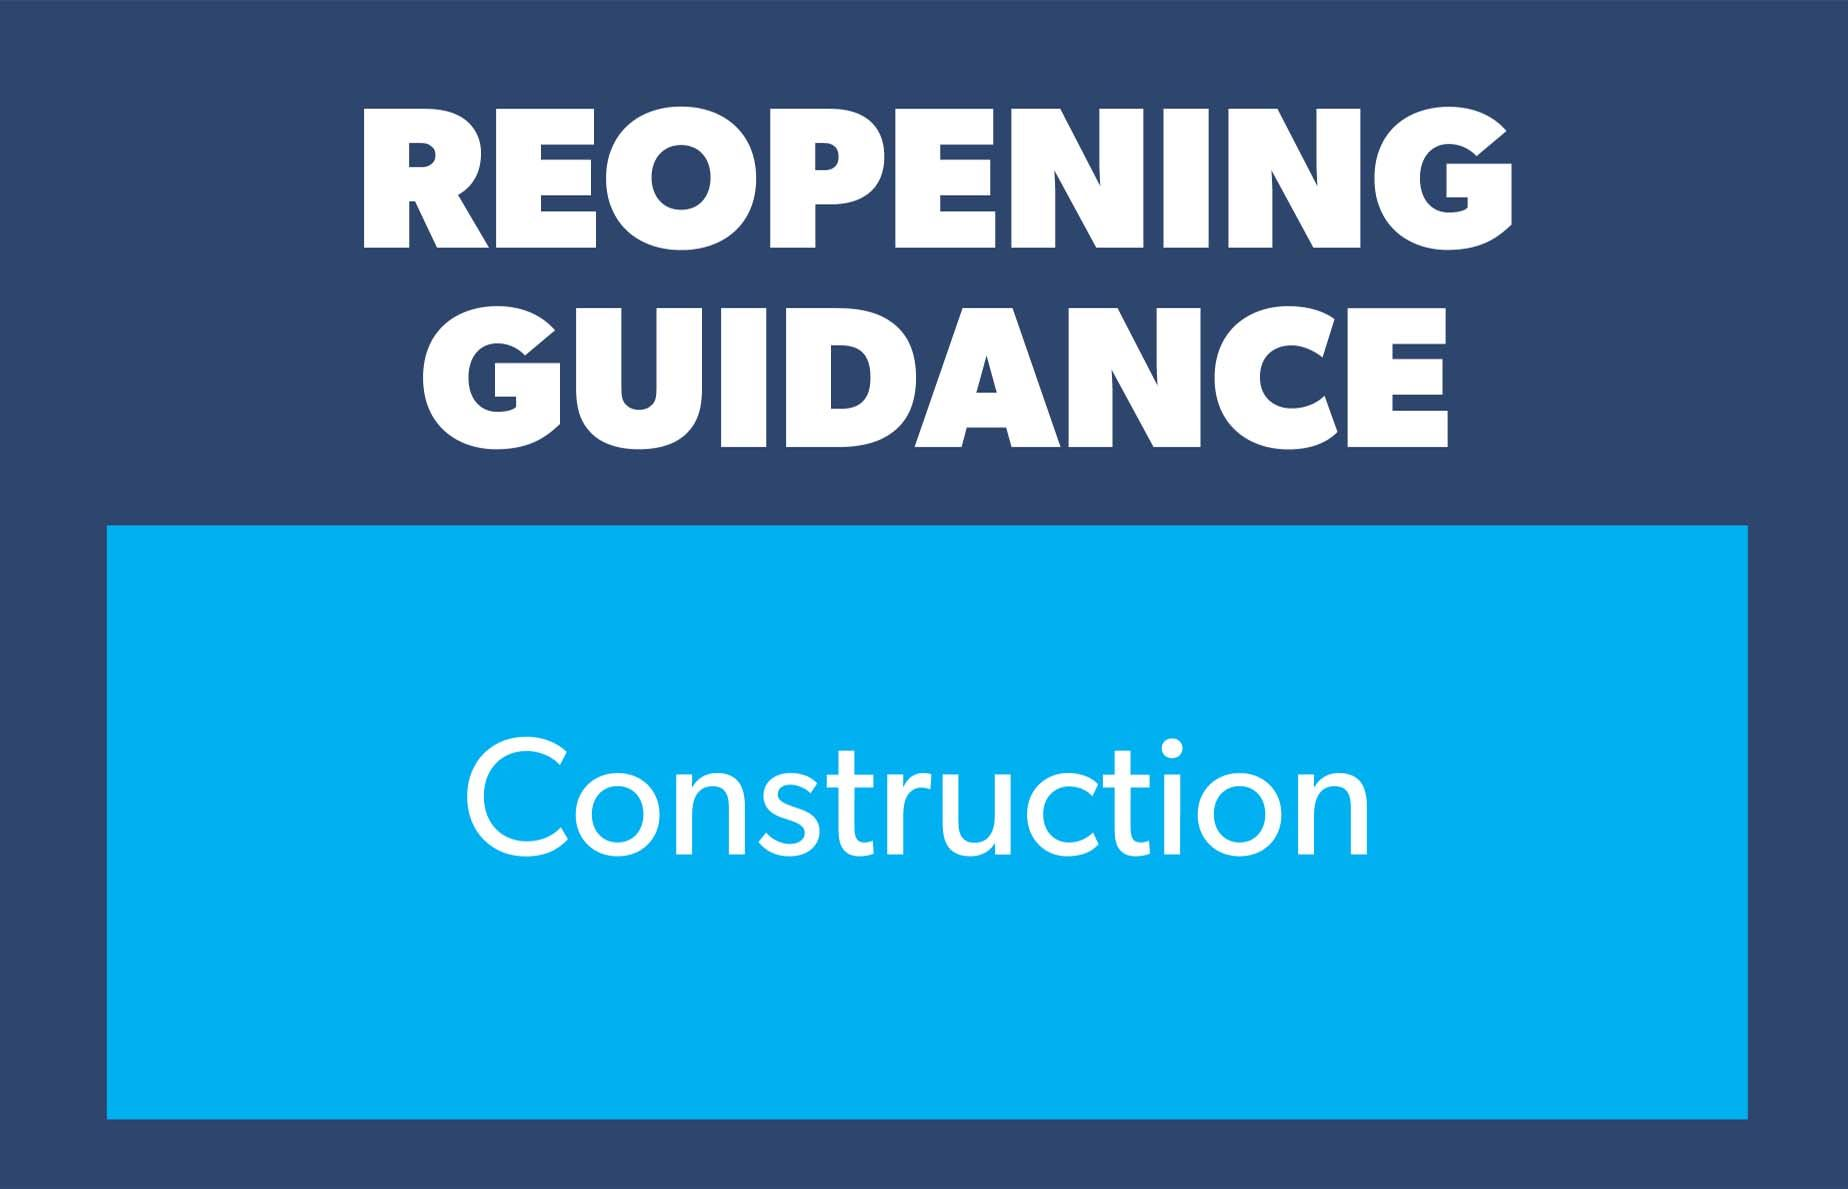 Guidance construction